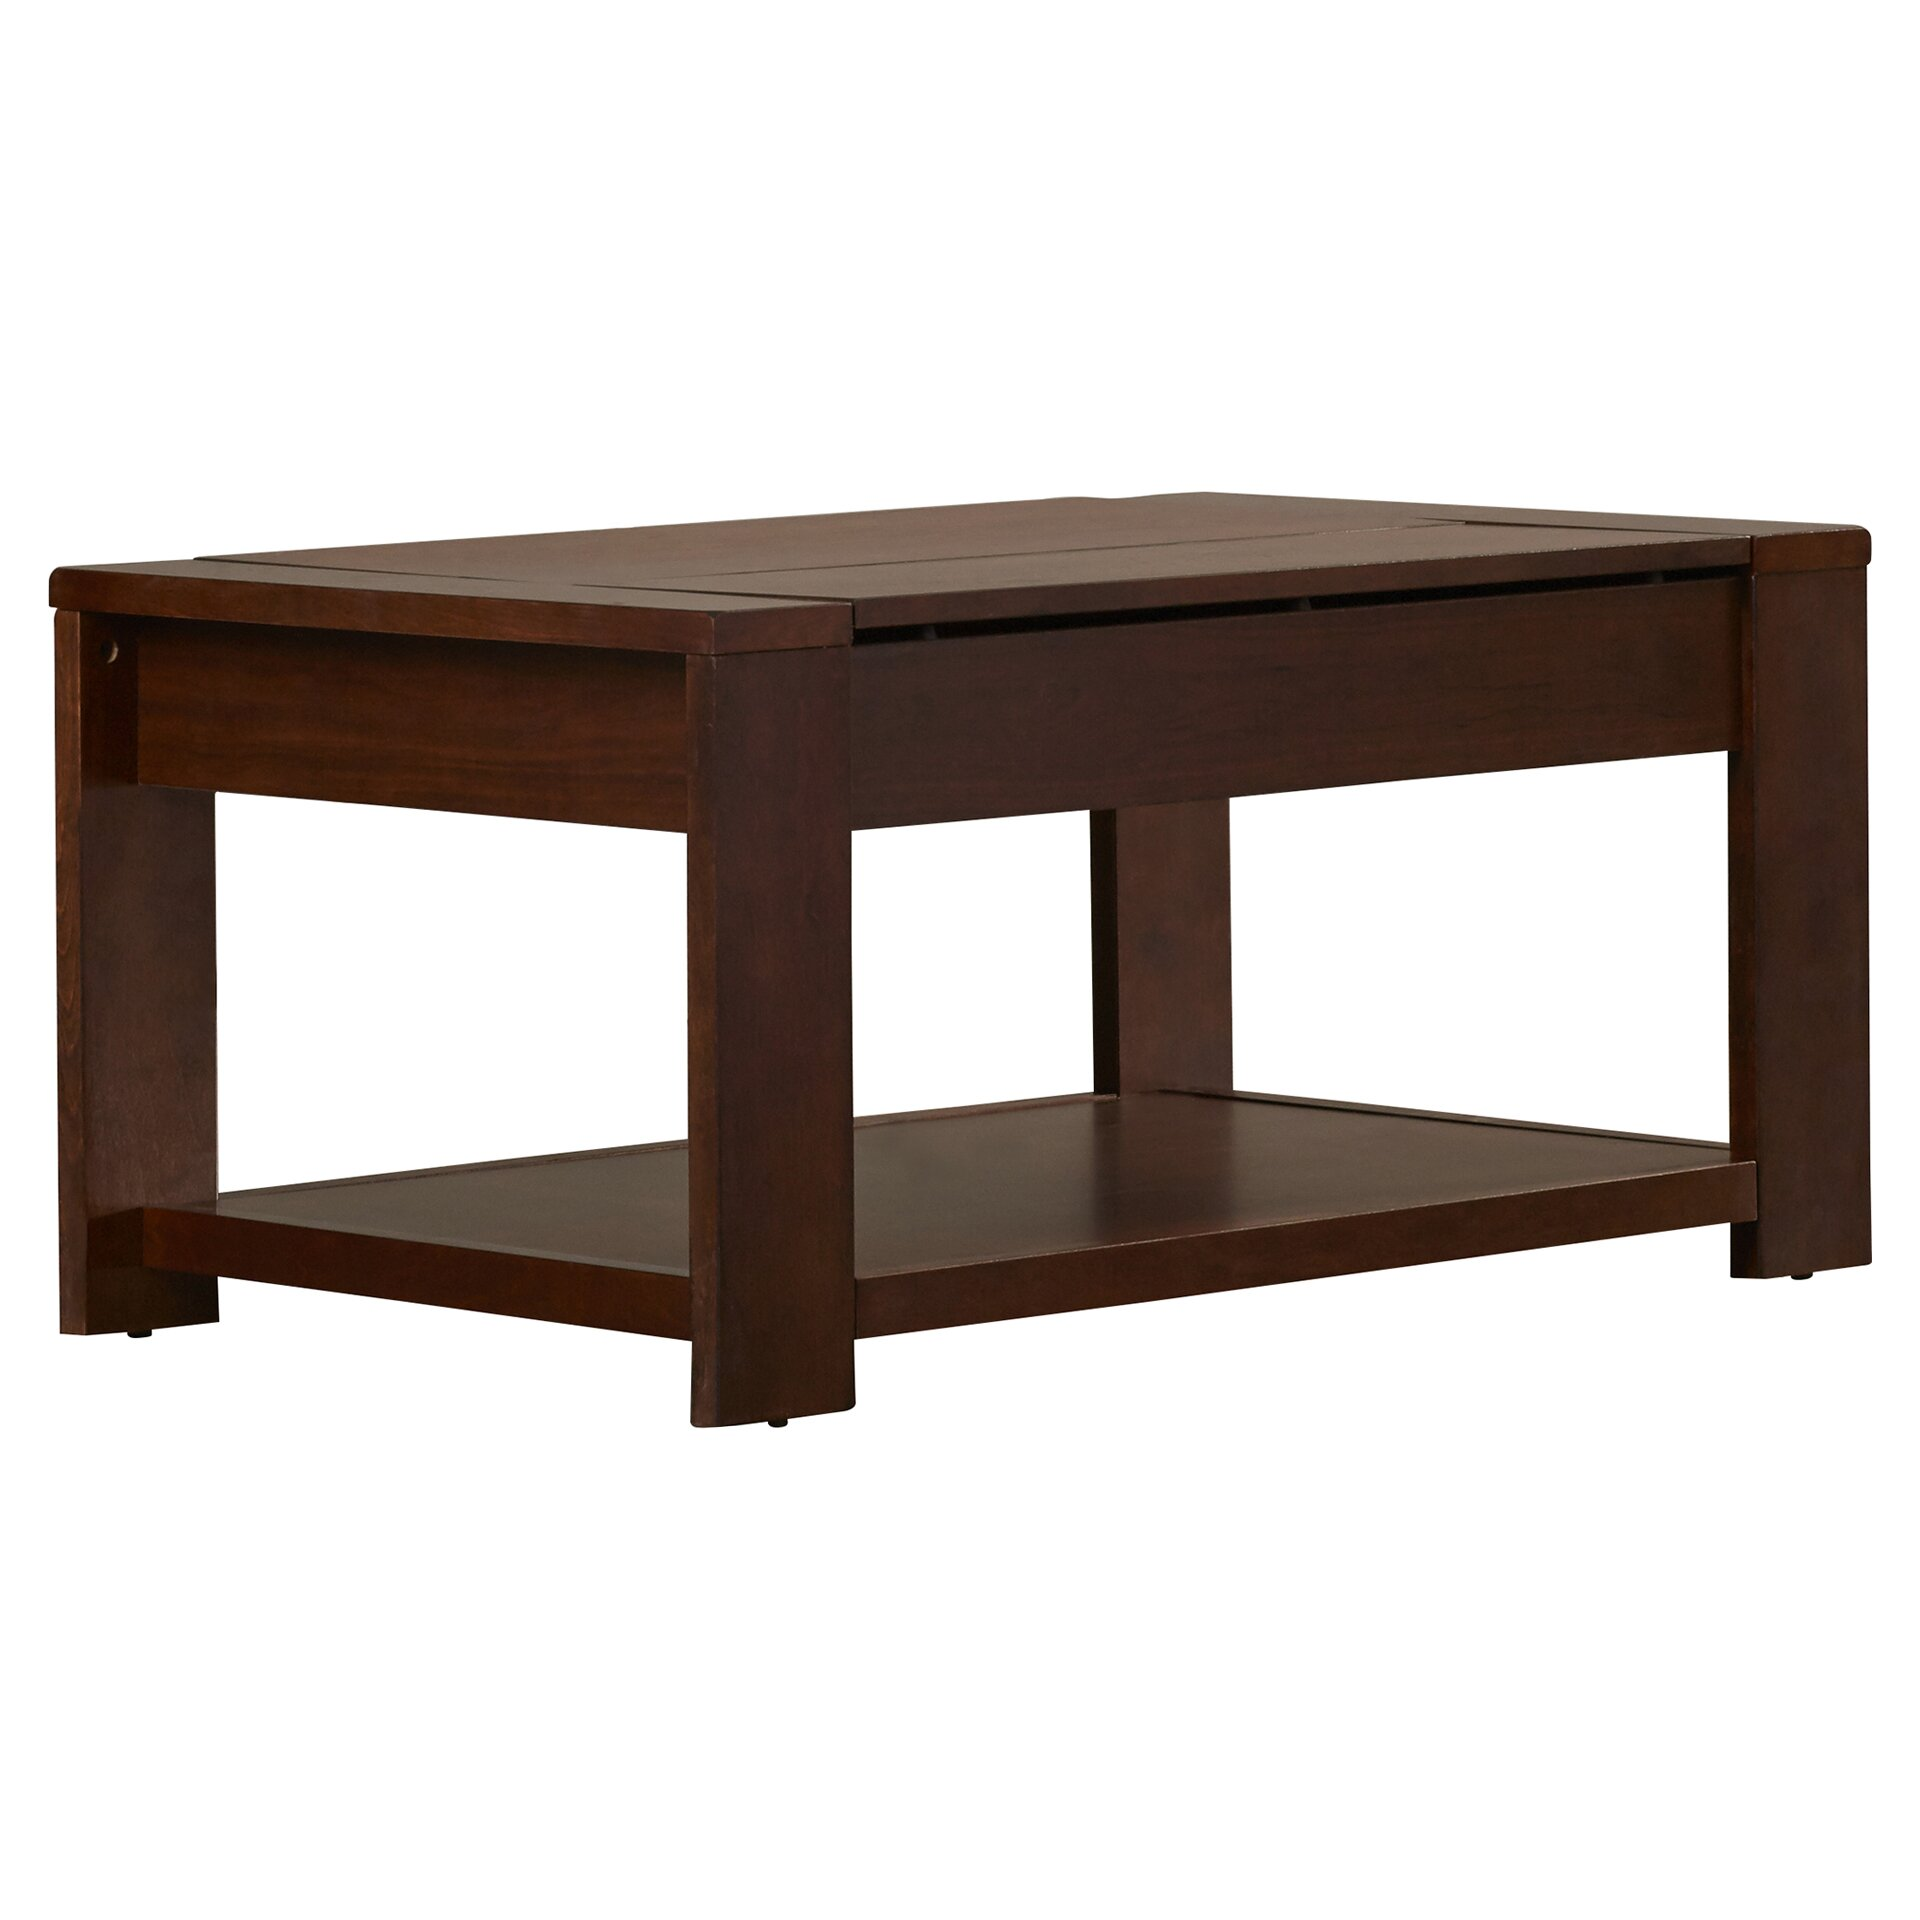 Halloween lawn decorations - August Grove Taylor Coffee Table With Lift Top Amp Reviews Wayfair